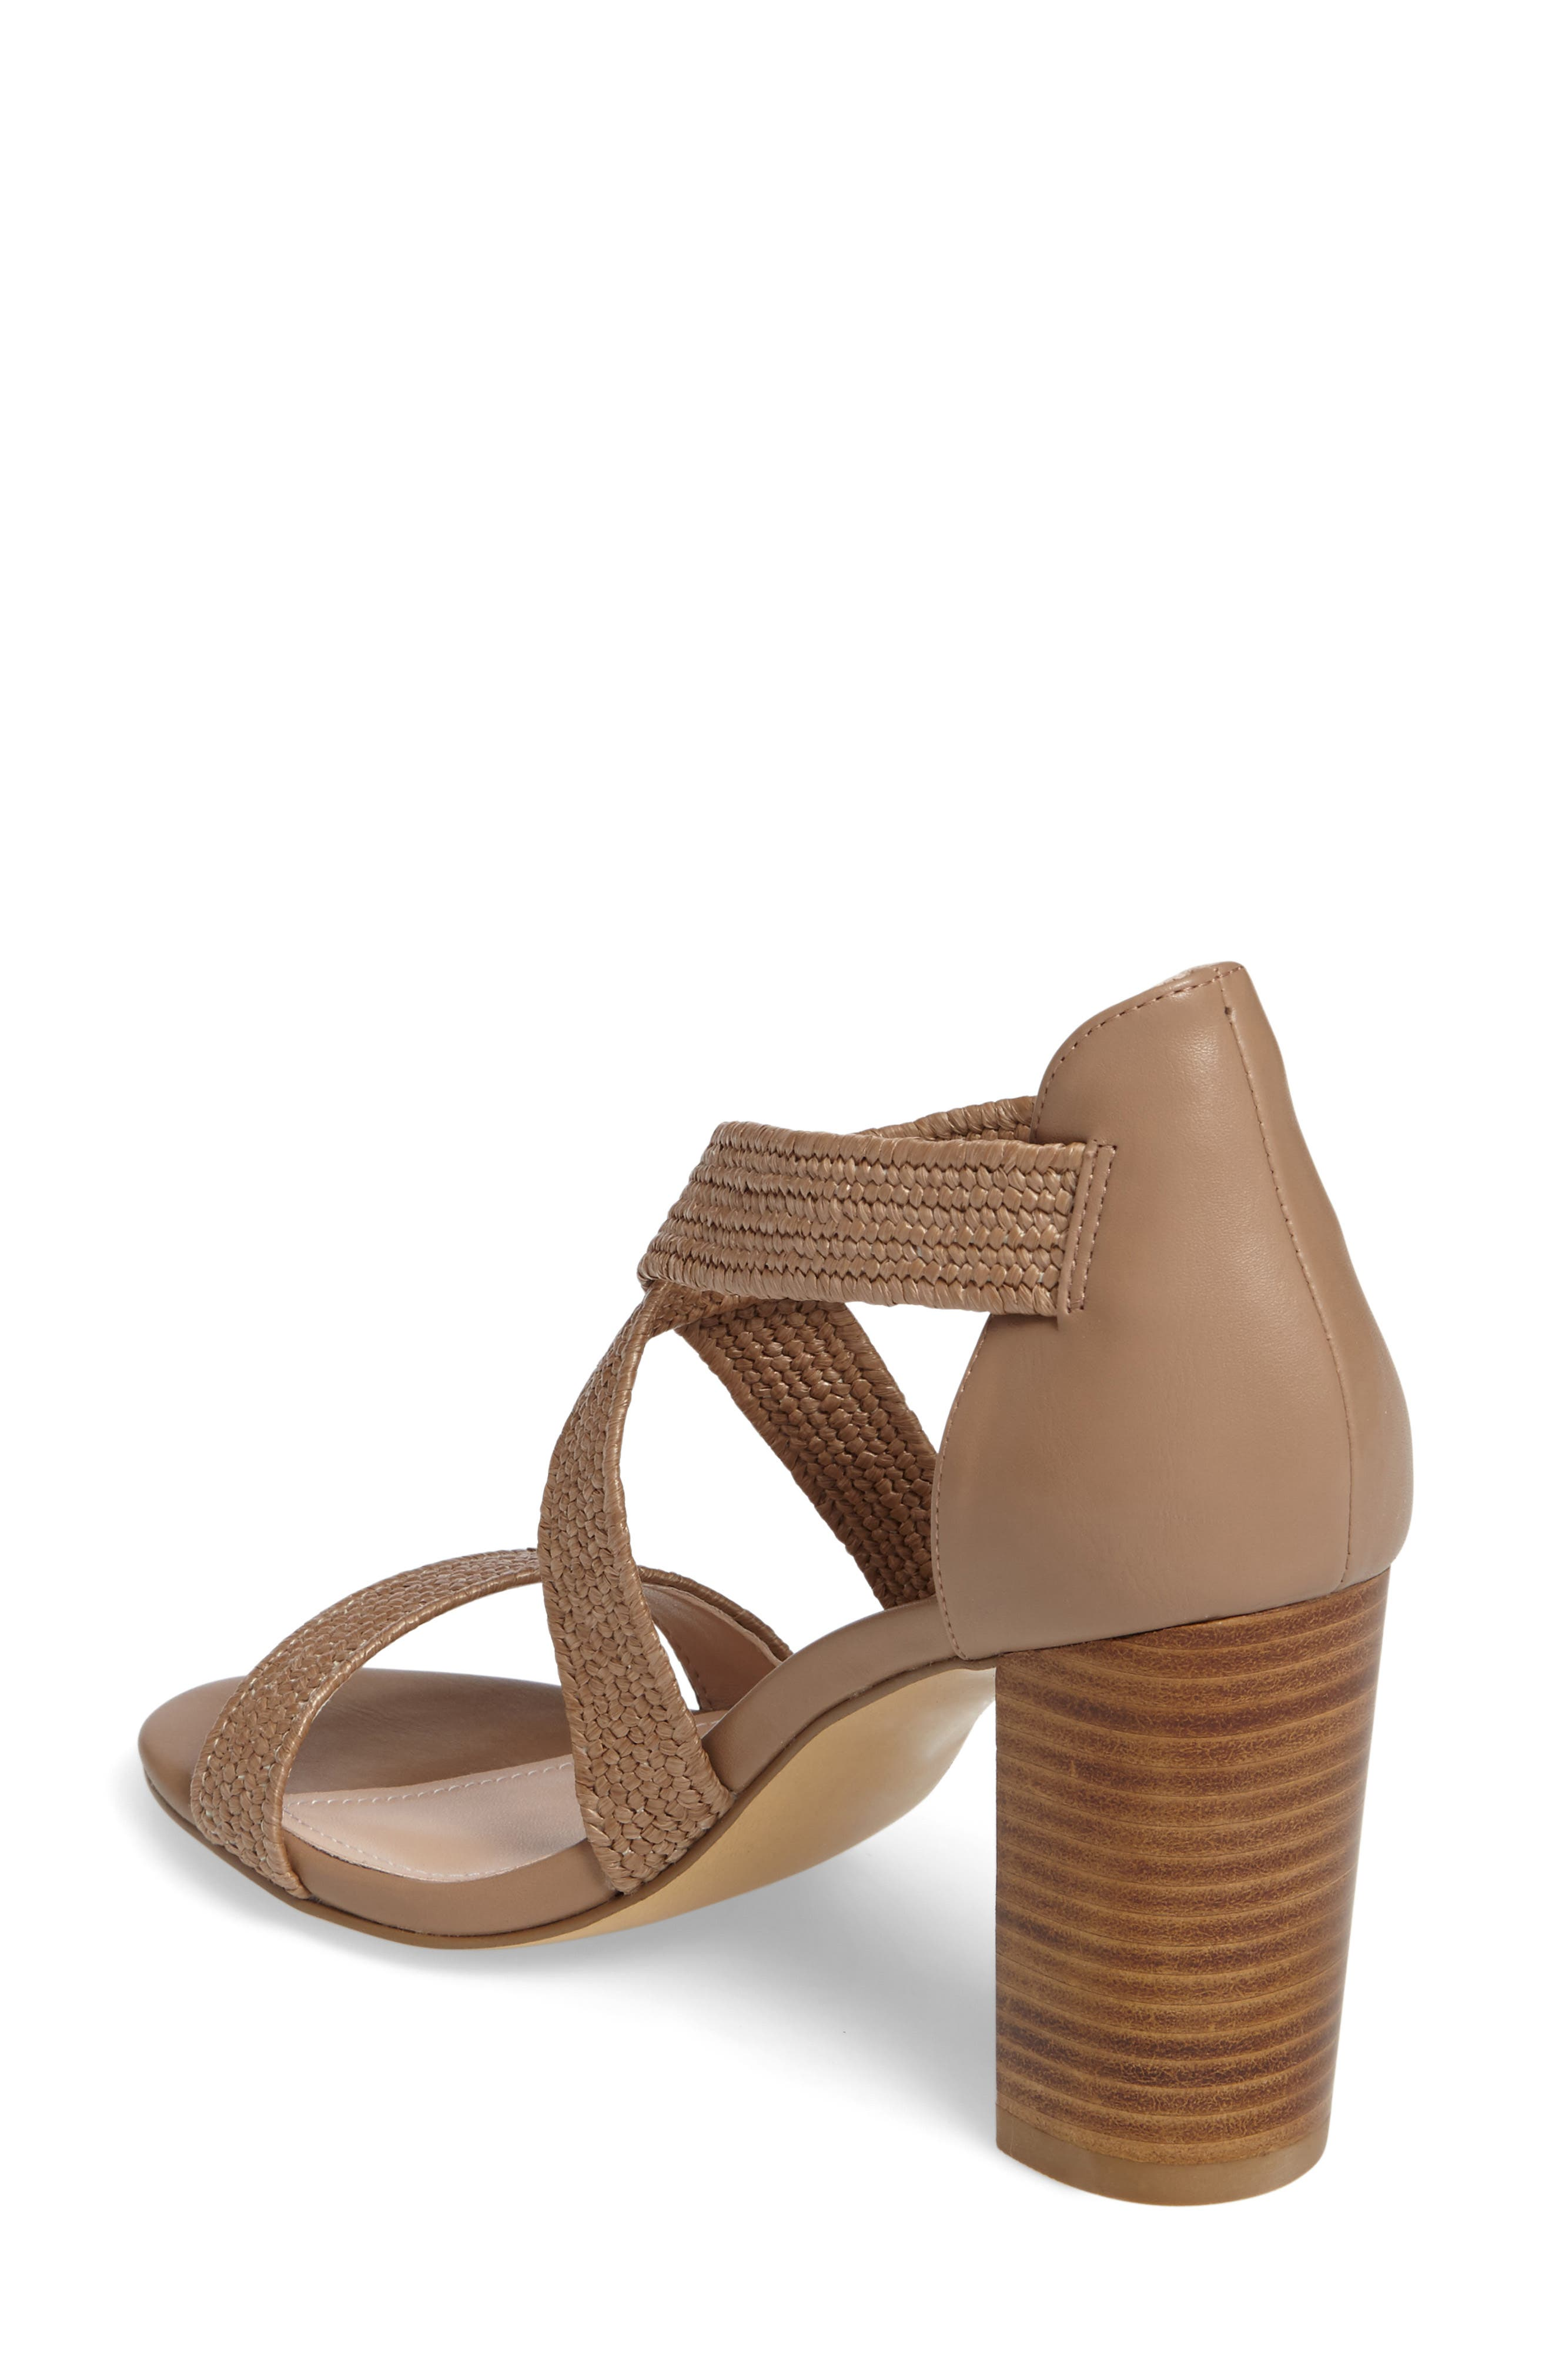 Emily Strappy Sandal,                             Alternate thumbnail 4, color,